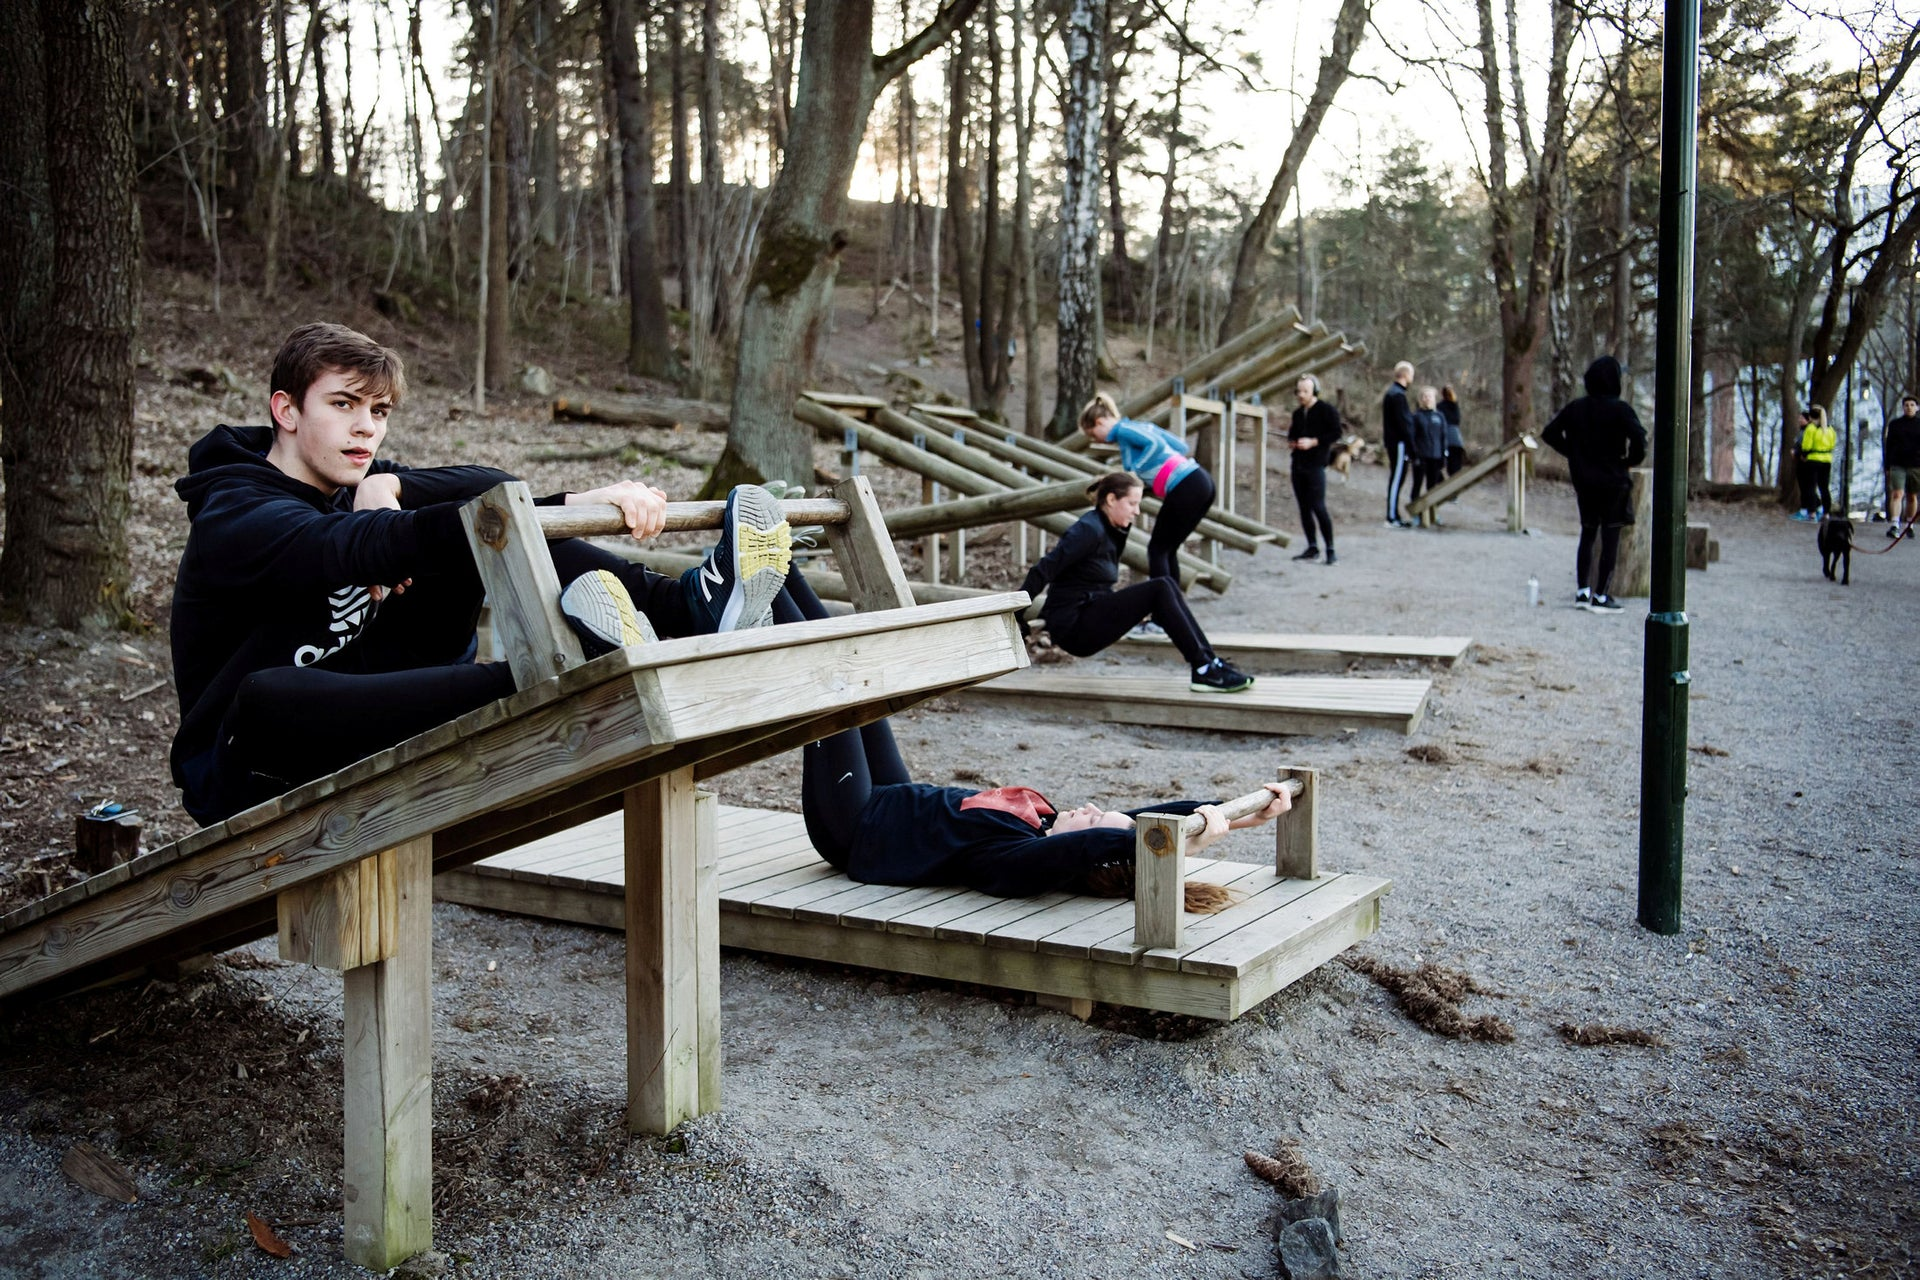 People train at an outdoor gym amid the spread of the coronavirus disease (COVID-19), on the outskirts of Stockholm, Sweden April 06, 2020.